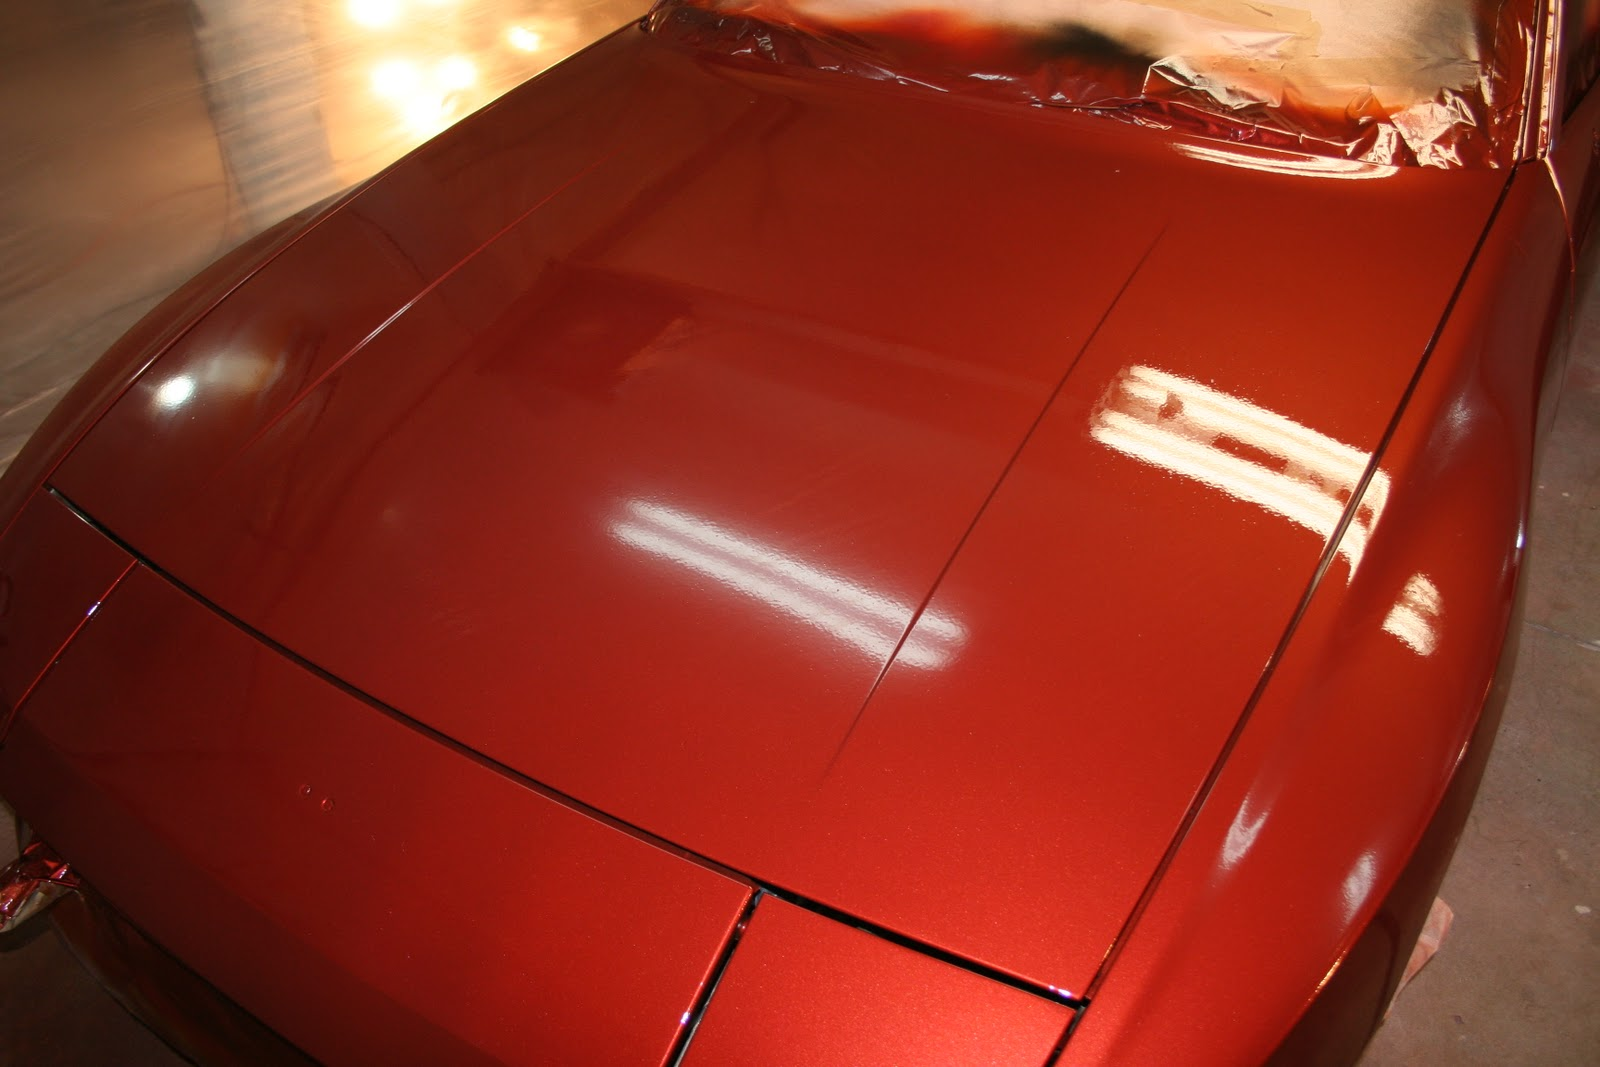 How to spray clear coat without orange peel - If You Zoom In On This Picture You Can Really See The Orange Peel That Keeps This Paint From Being Perfectly Mirror Like